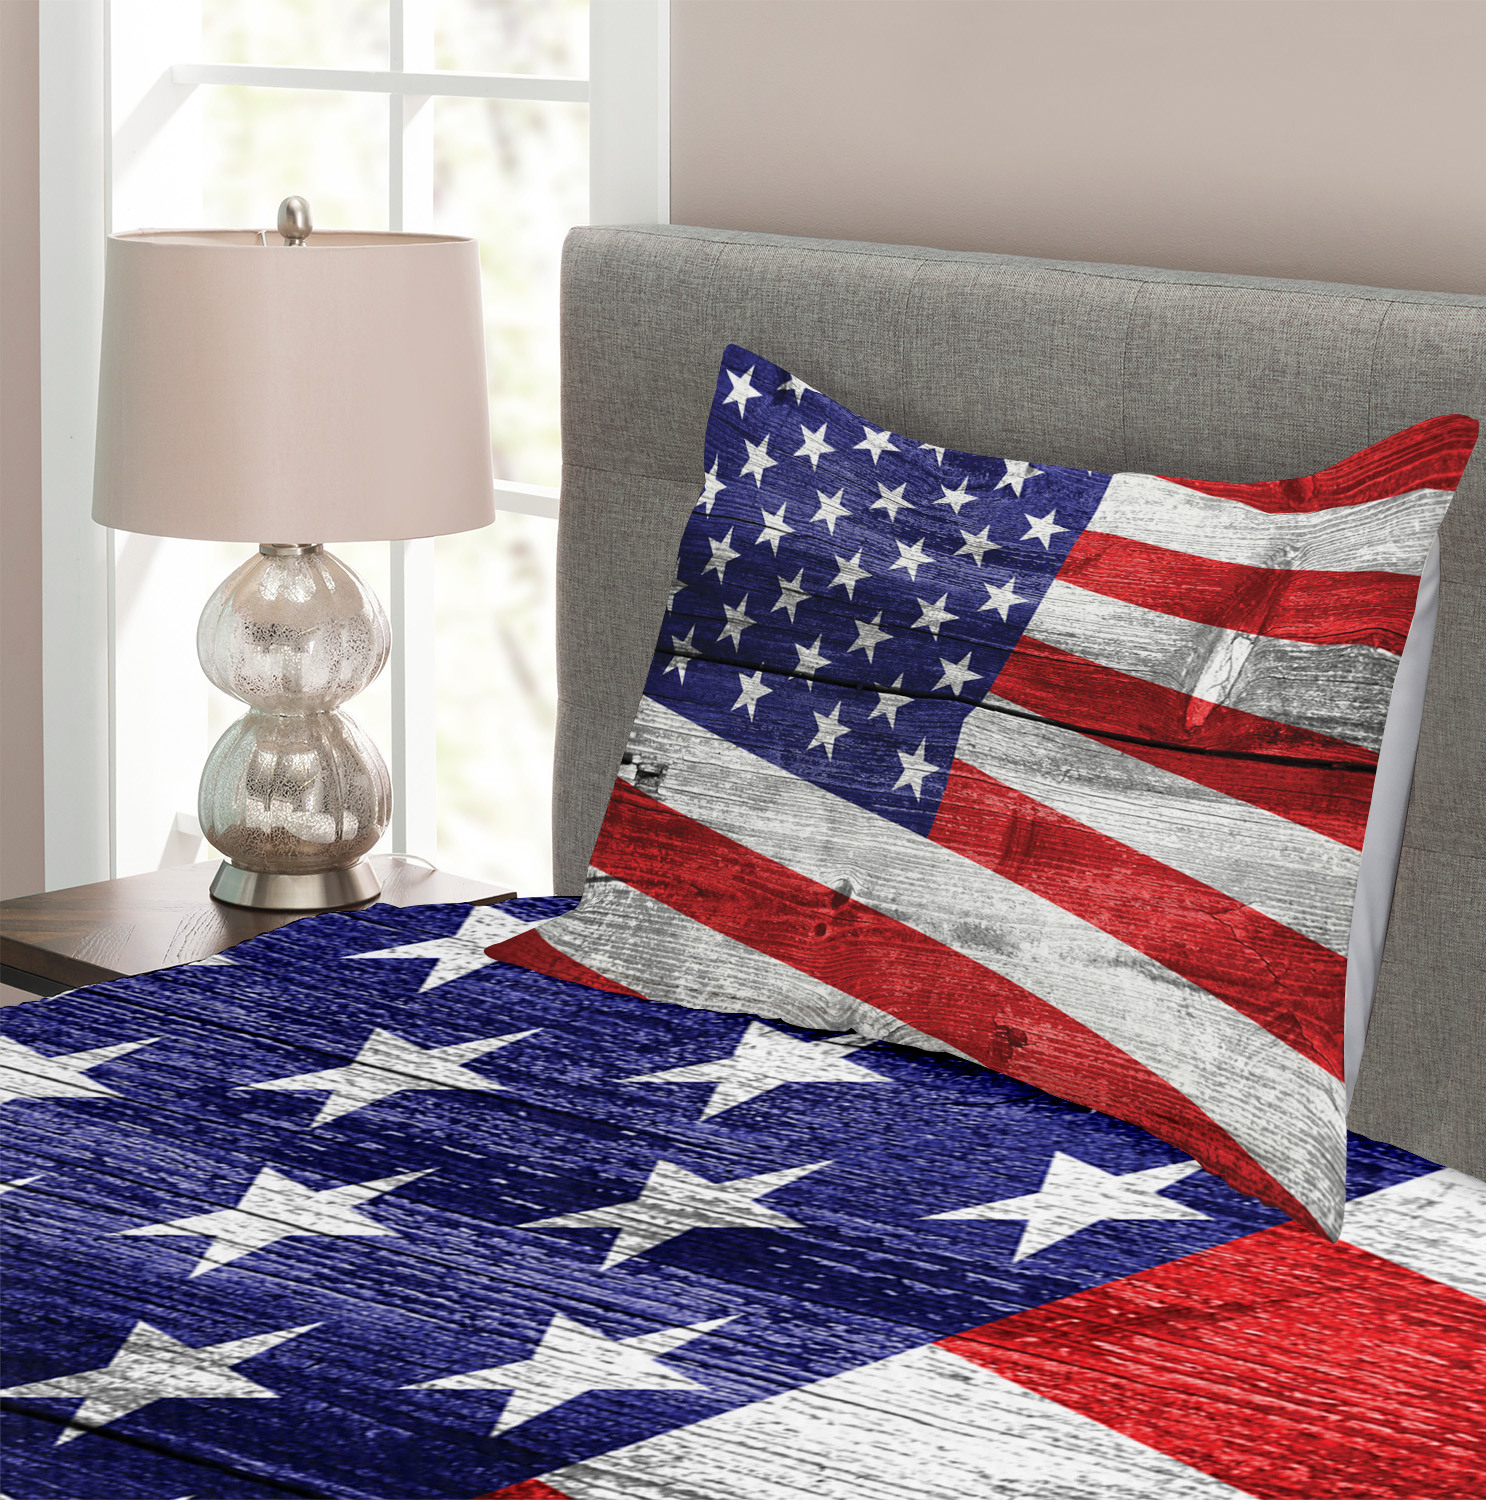 Patriotic Quilted Bedspread /& Pillow Shams Set America Patriotic Day Print